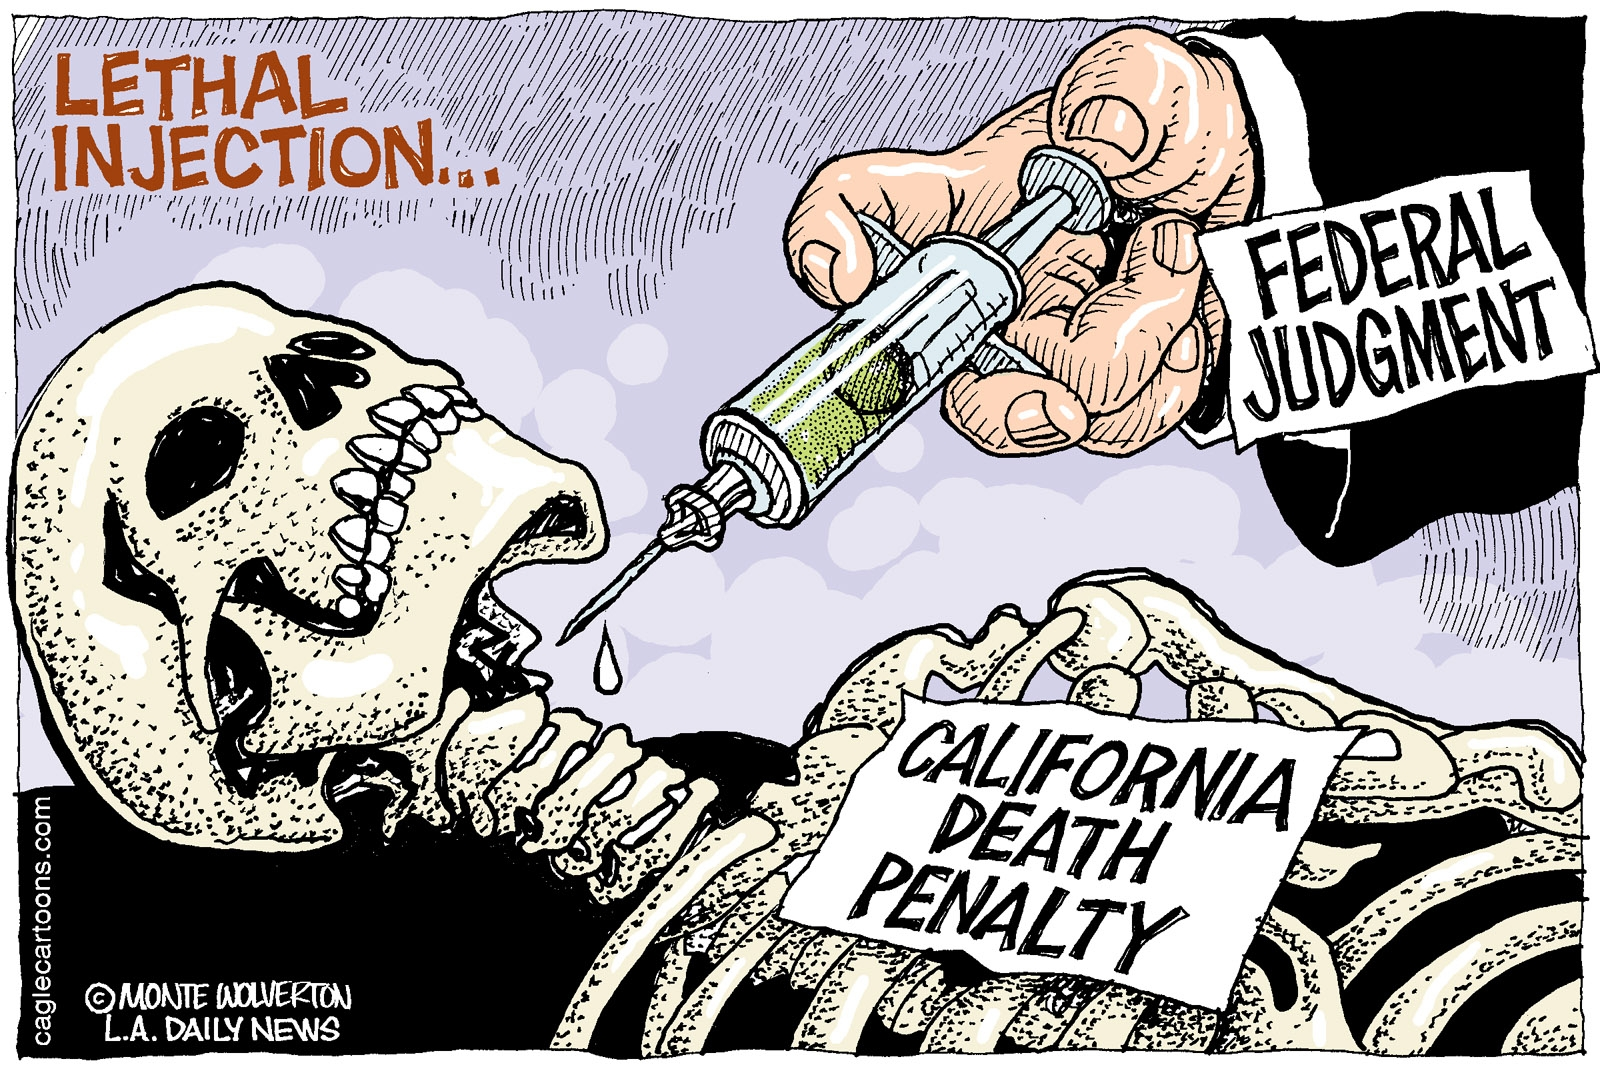 an argument in favor of death penalty with lethal injection in the united states Home » more subjects » politics » an argument in favor of capital punishment  lower in europe than in the united states  punishment have lethal injection.